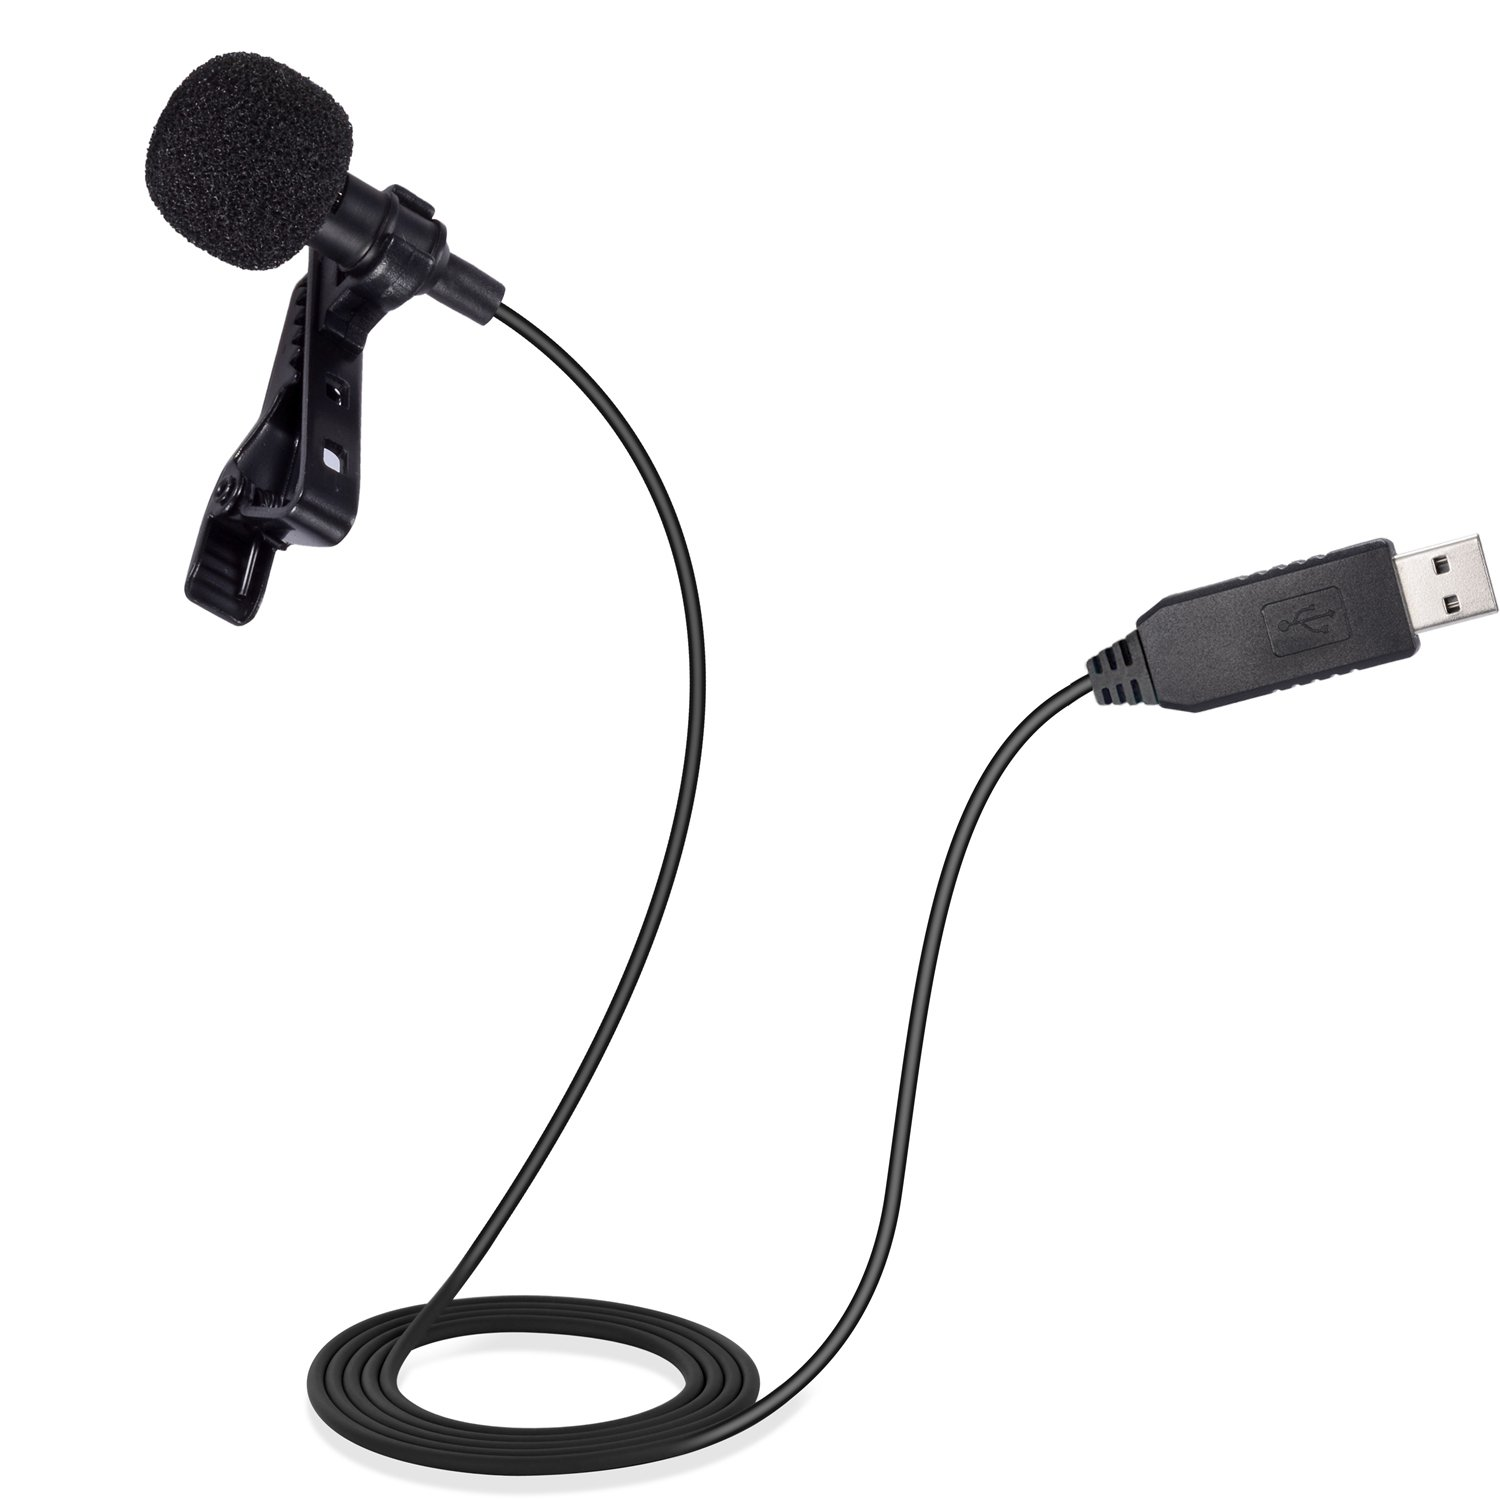 Mic for Computer, PChero USB Lavalier Clip-on Omnidirectional Condenser Microphone for Laptop PC Macbook, Perfect for Interviews, Skype, Audio Video Youtube Recording, QQ, MSN, Skypee, Podcast by PChero (Image #8)